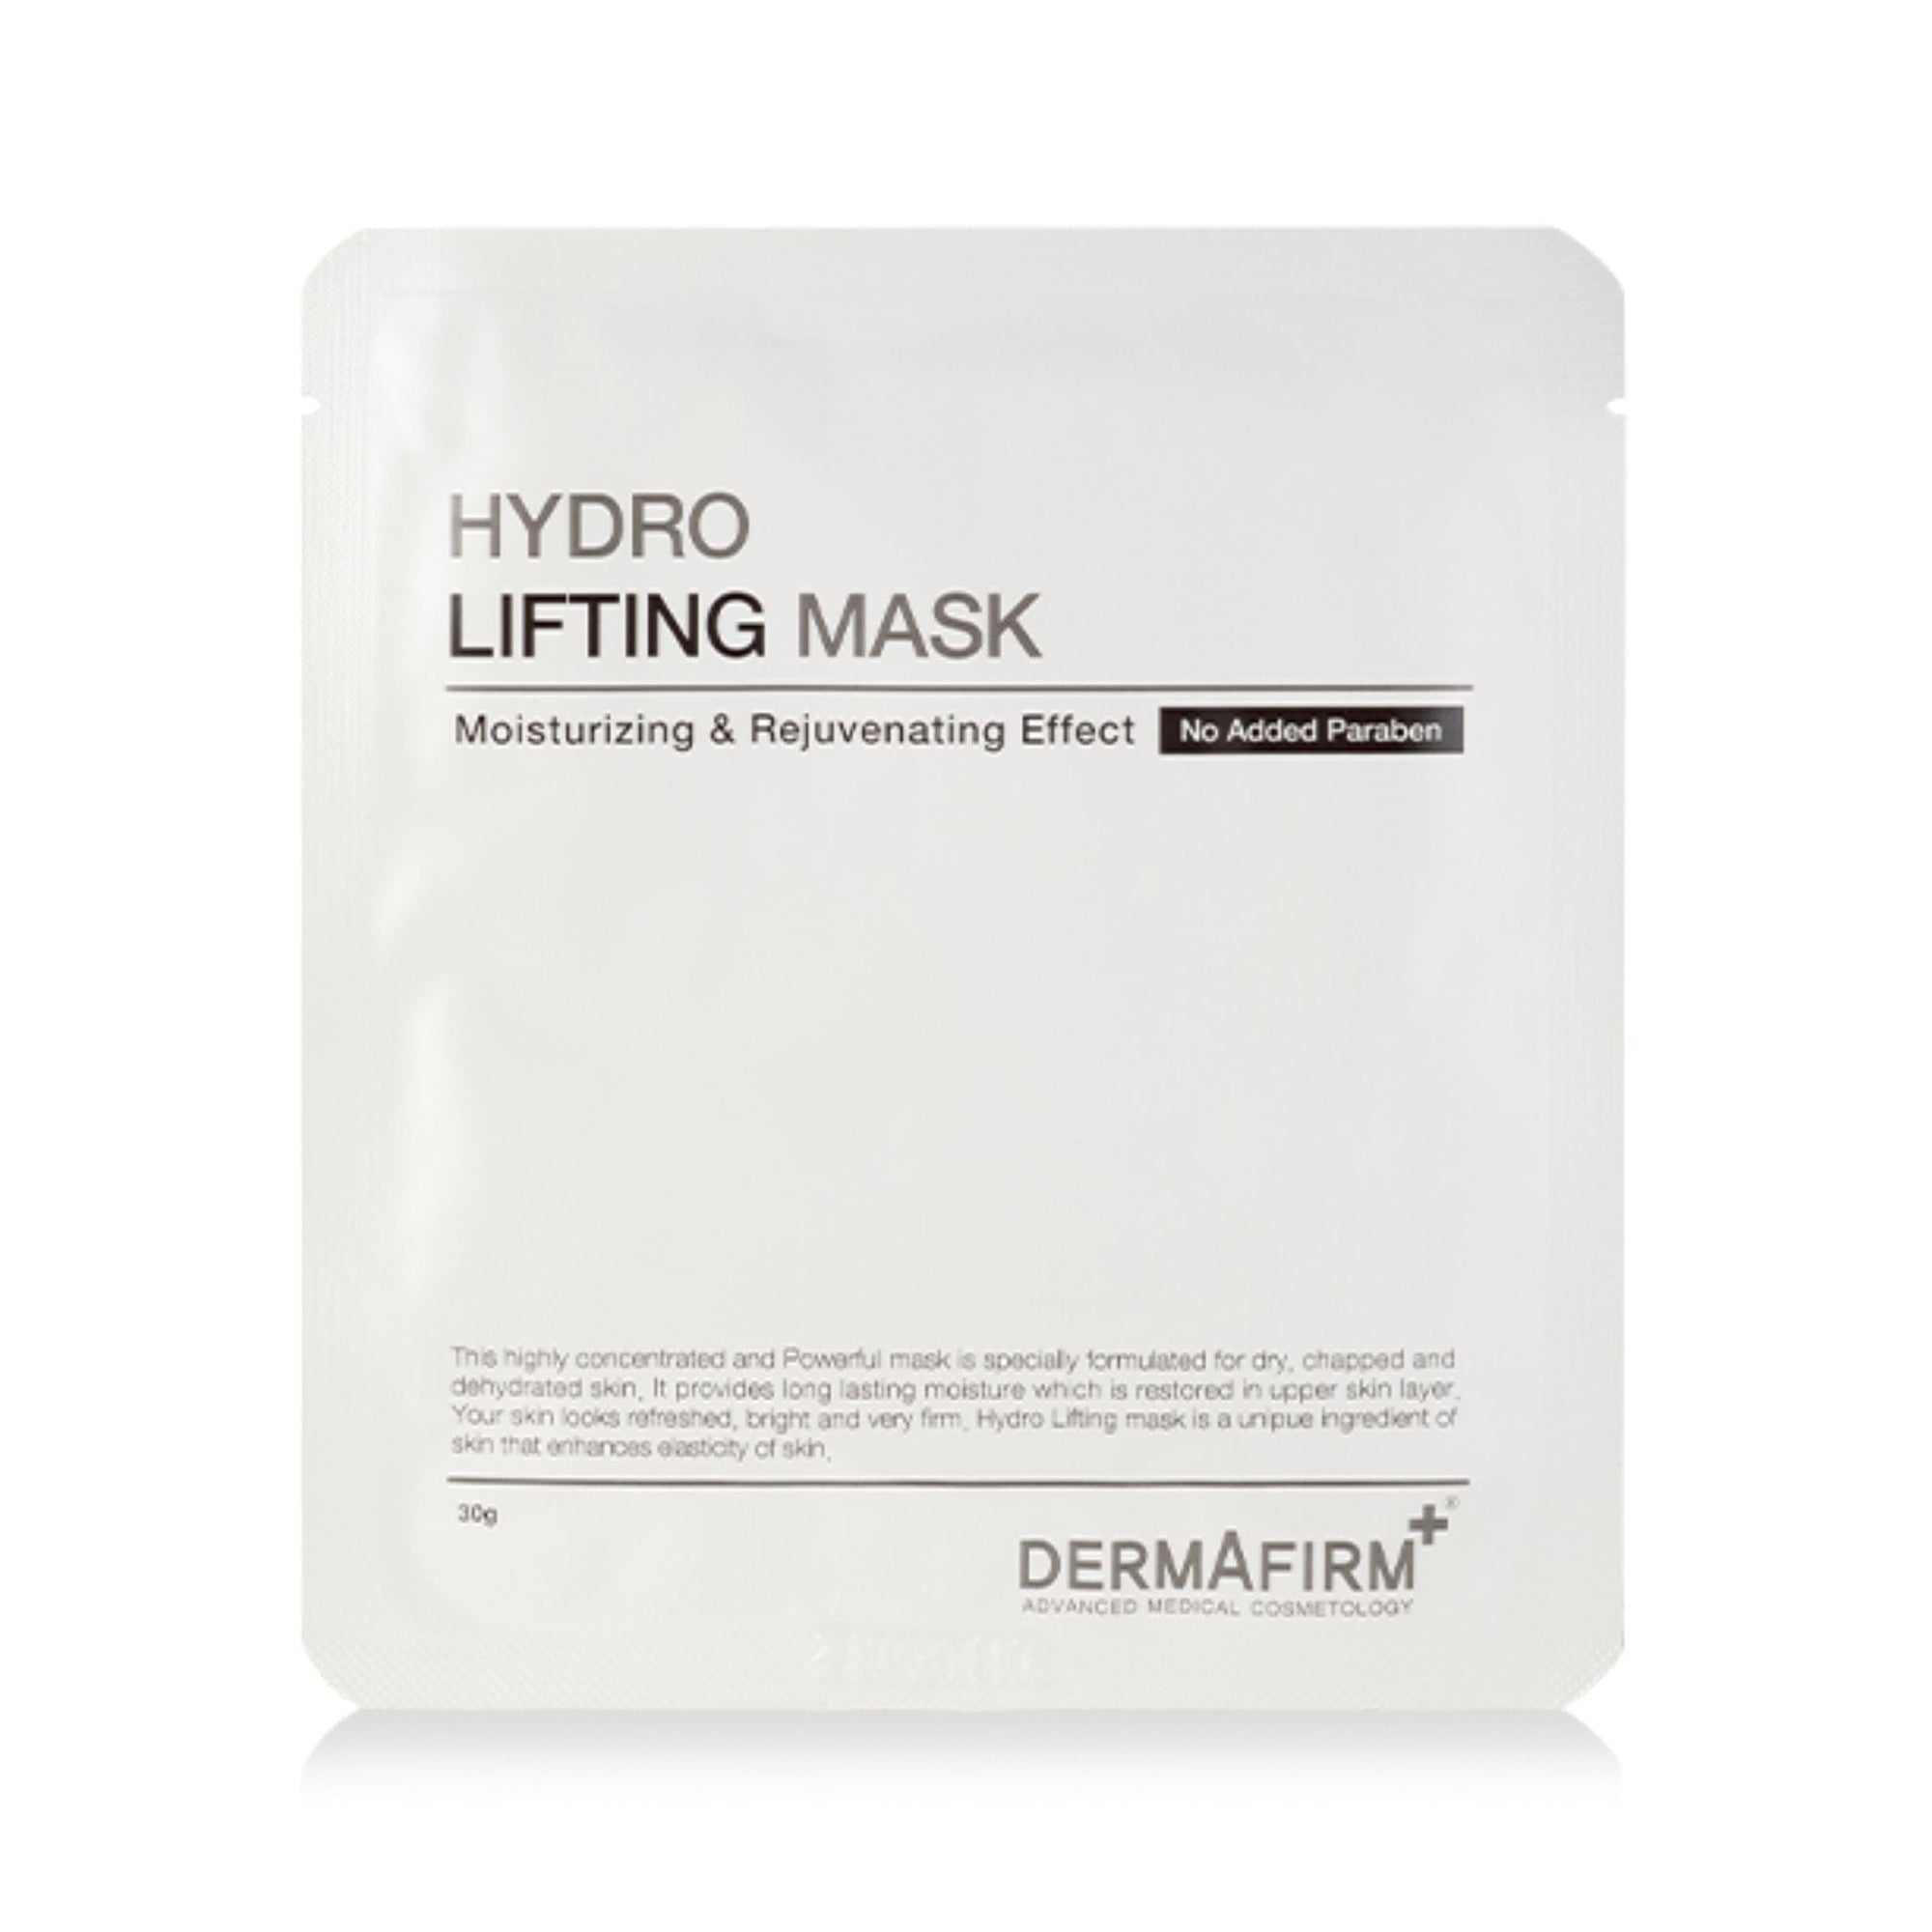 Hydro Lifting Mask - 30g (5 packs)